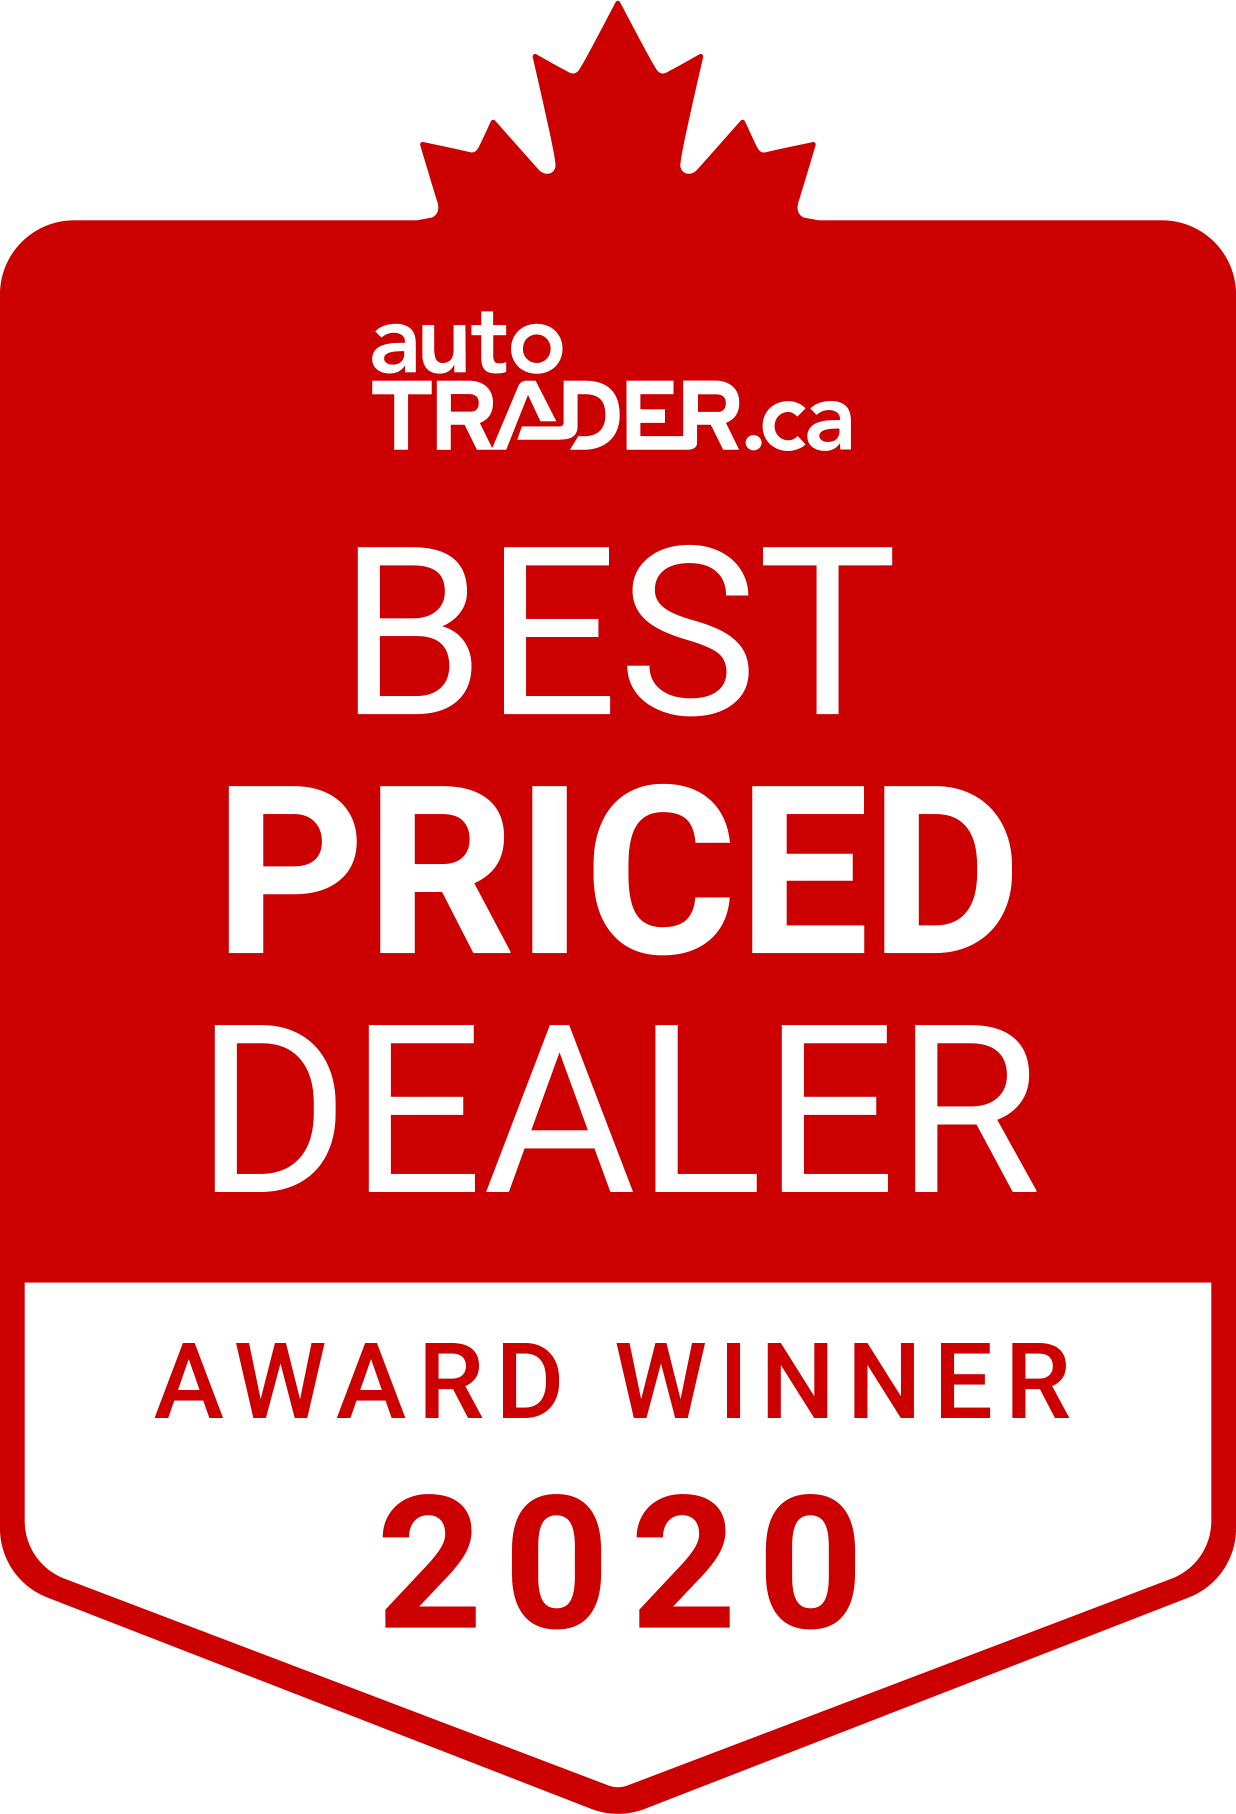 2020 Best priced dealer Award Winner